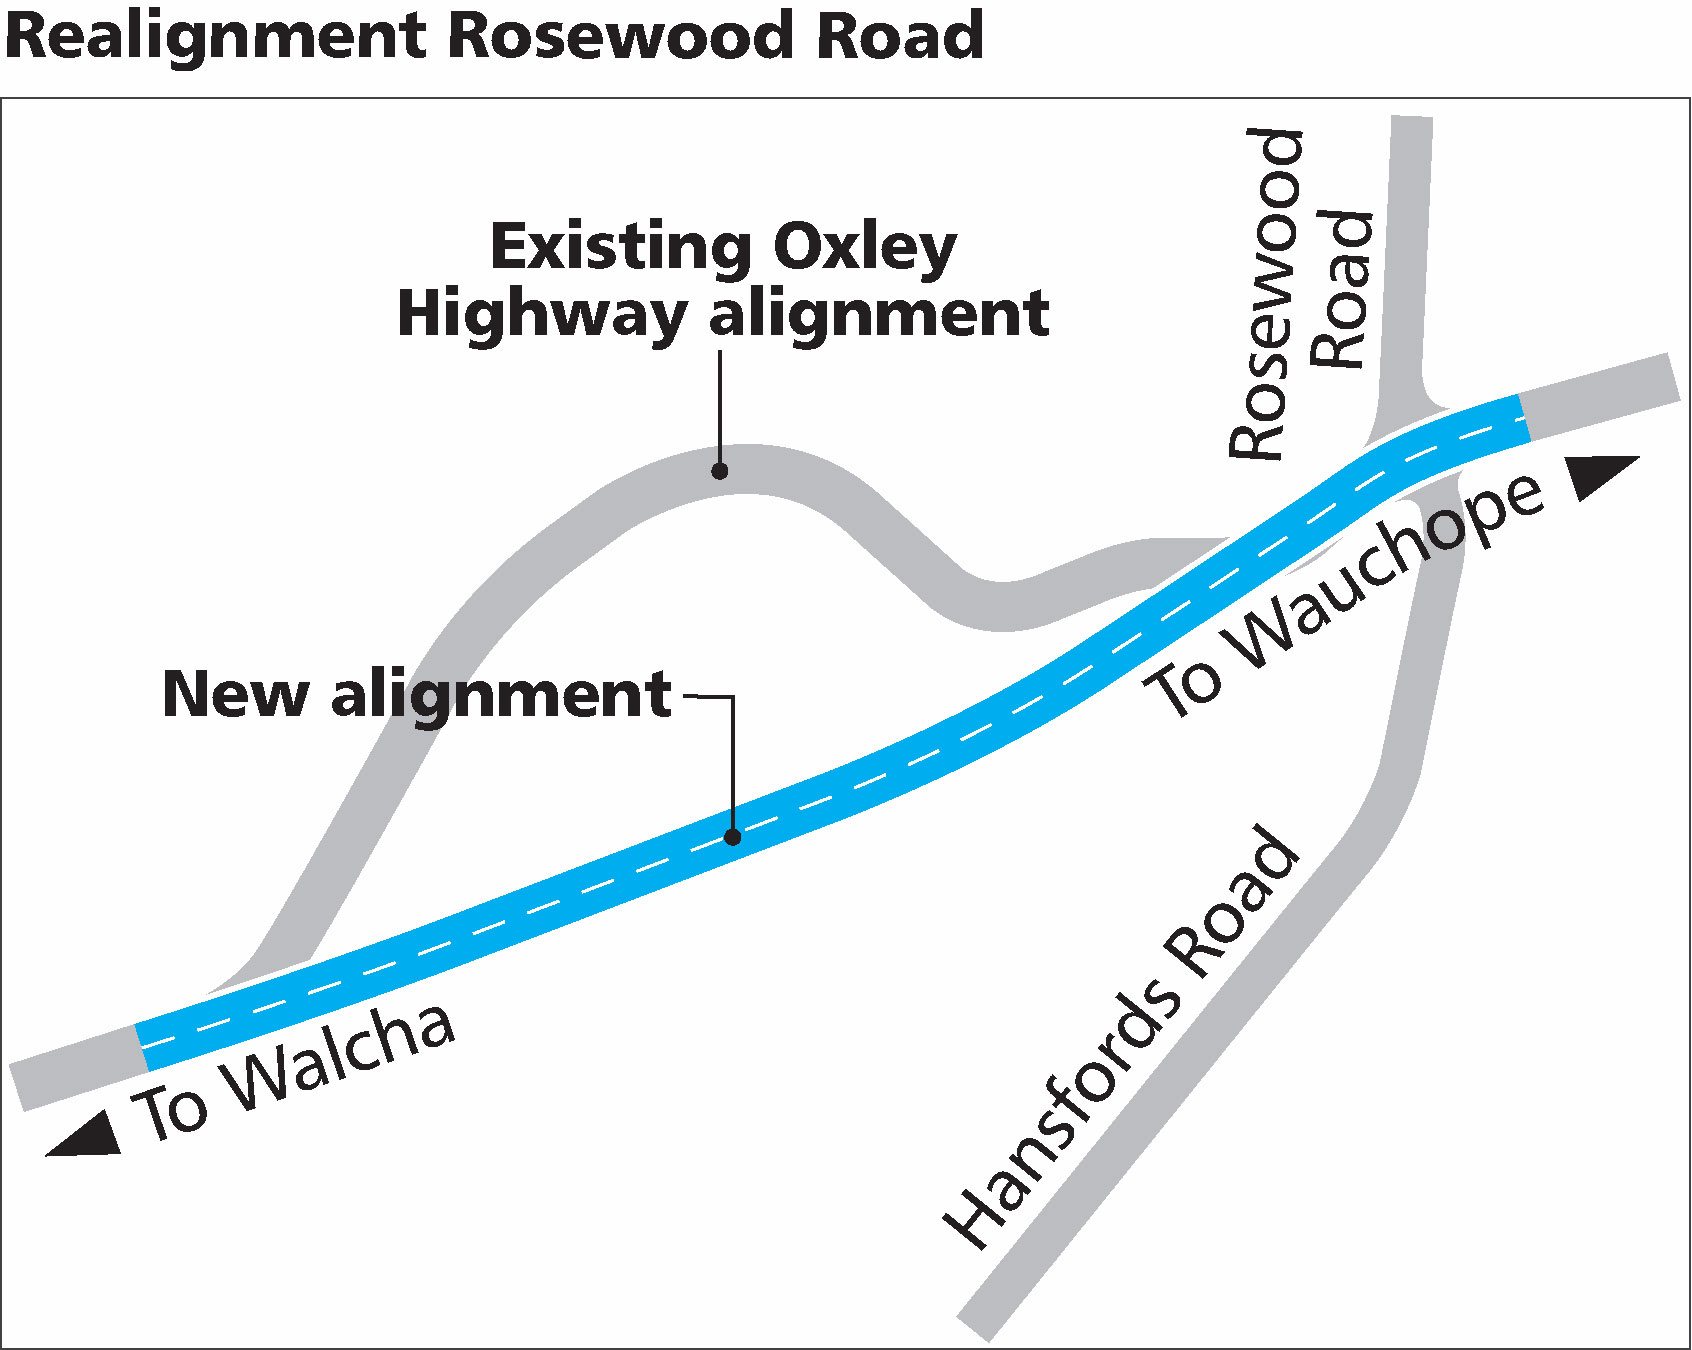 Oxley Highway Upgrade Rosewood Northern Nsw Auto Turnsignal Reminder Circuit Diagram Tradeoficcom View Or Download The Concept Design Of Realignment